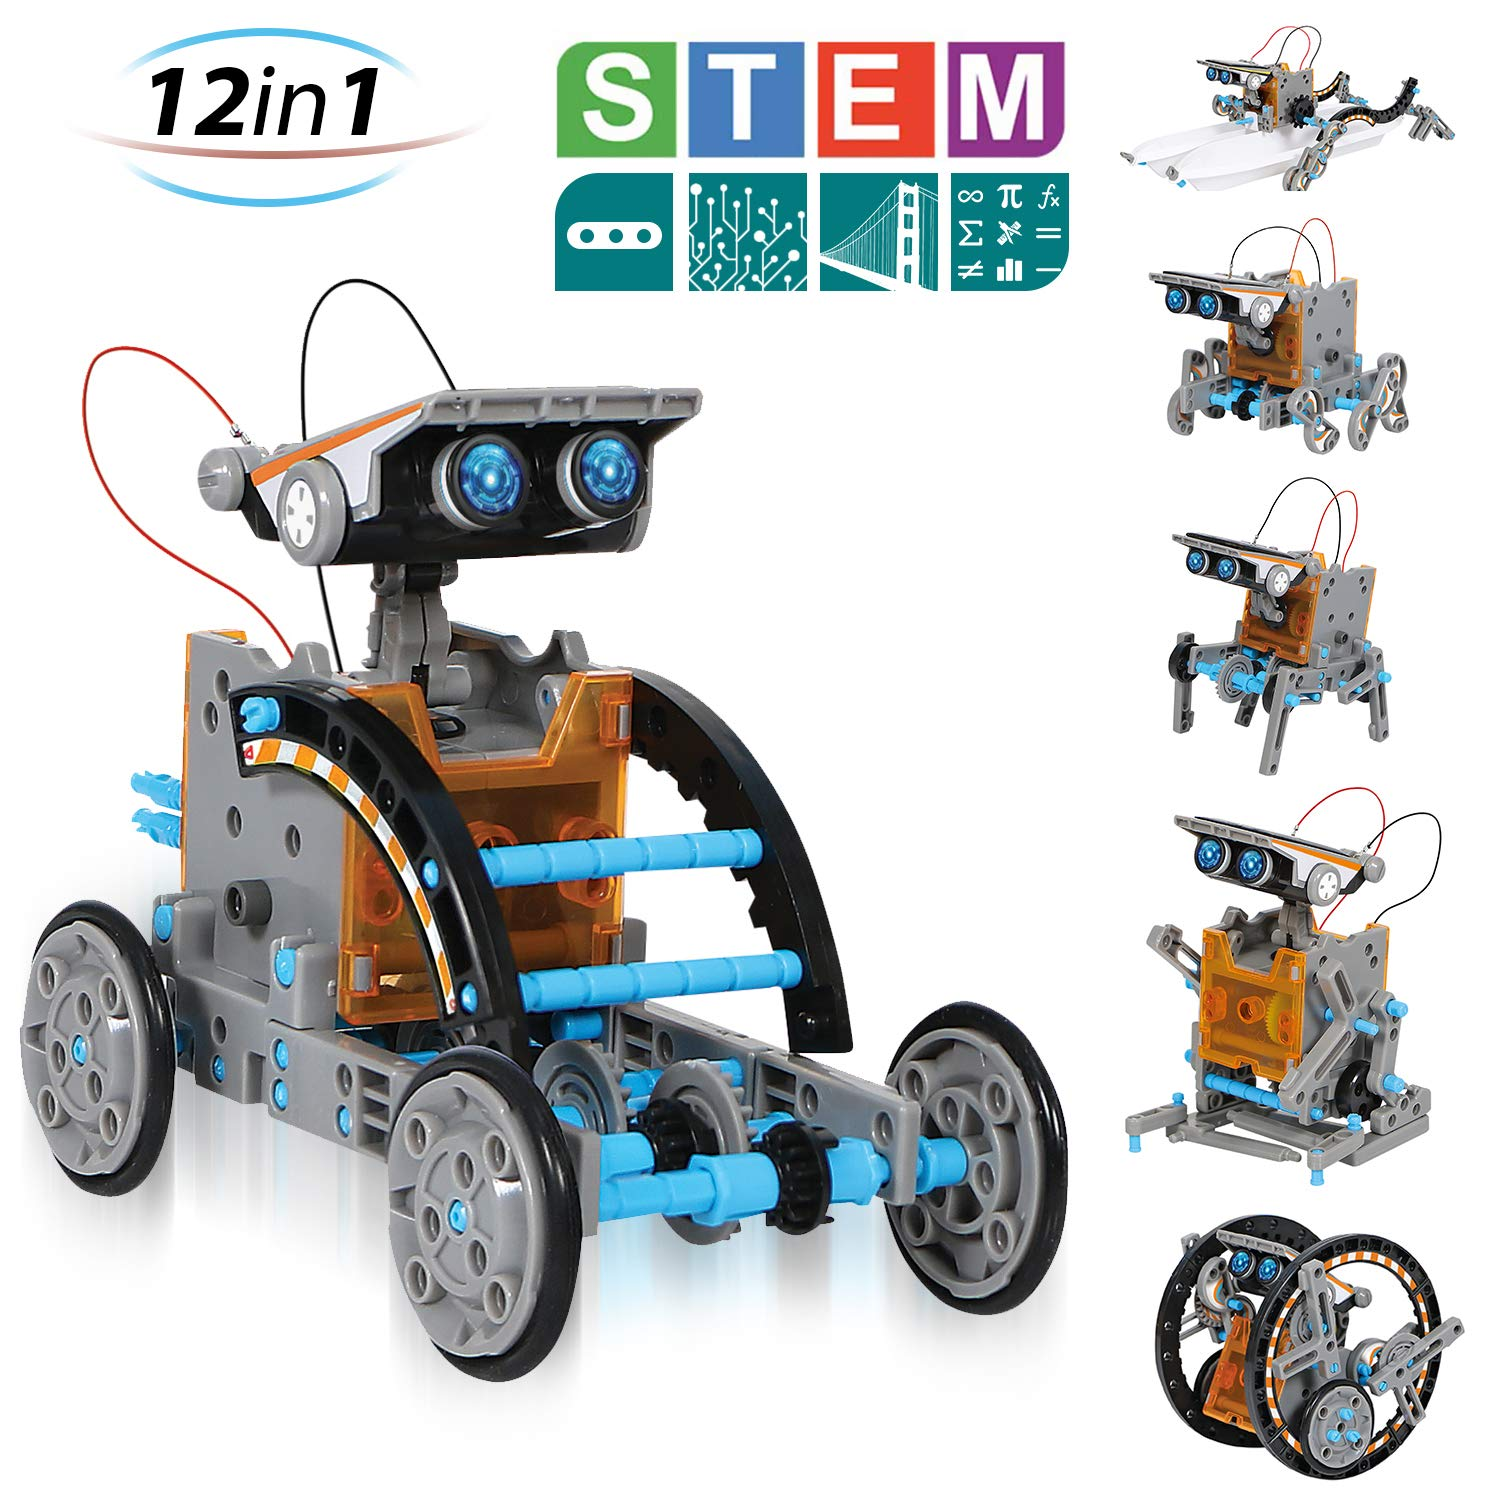 CIRO Solar Robot Creation Kit, 12-in-1 Solar Robot Kit for Kids, STEM Educational Science Toys with Working Solar Powered Motorized Engine and Gears by CIRO